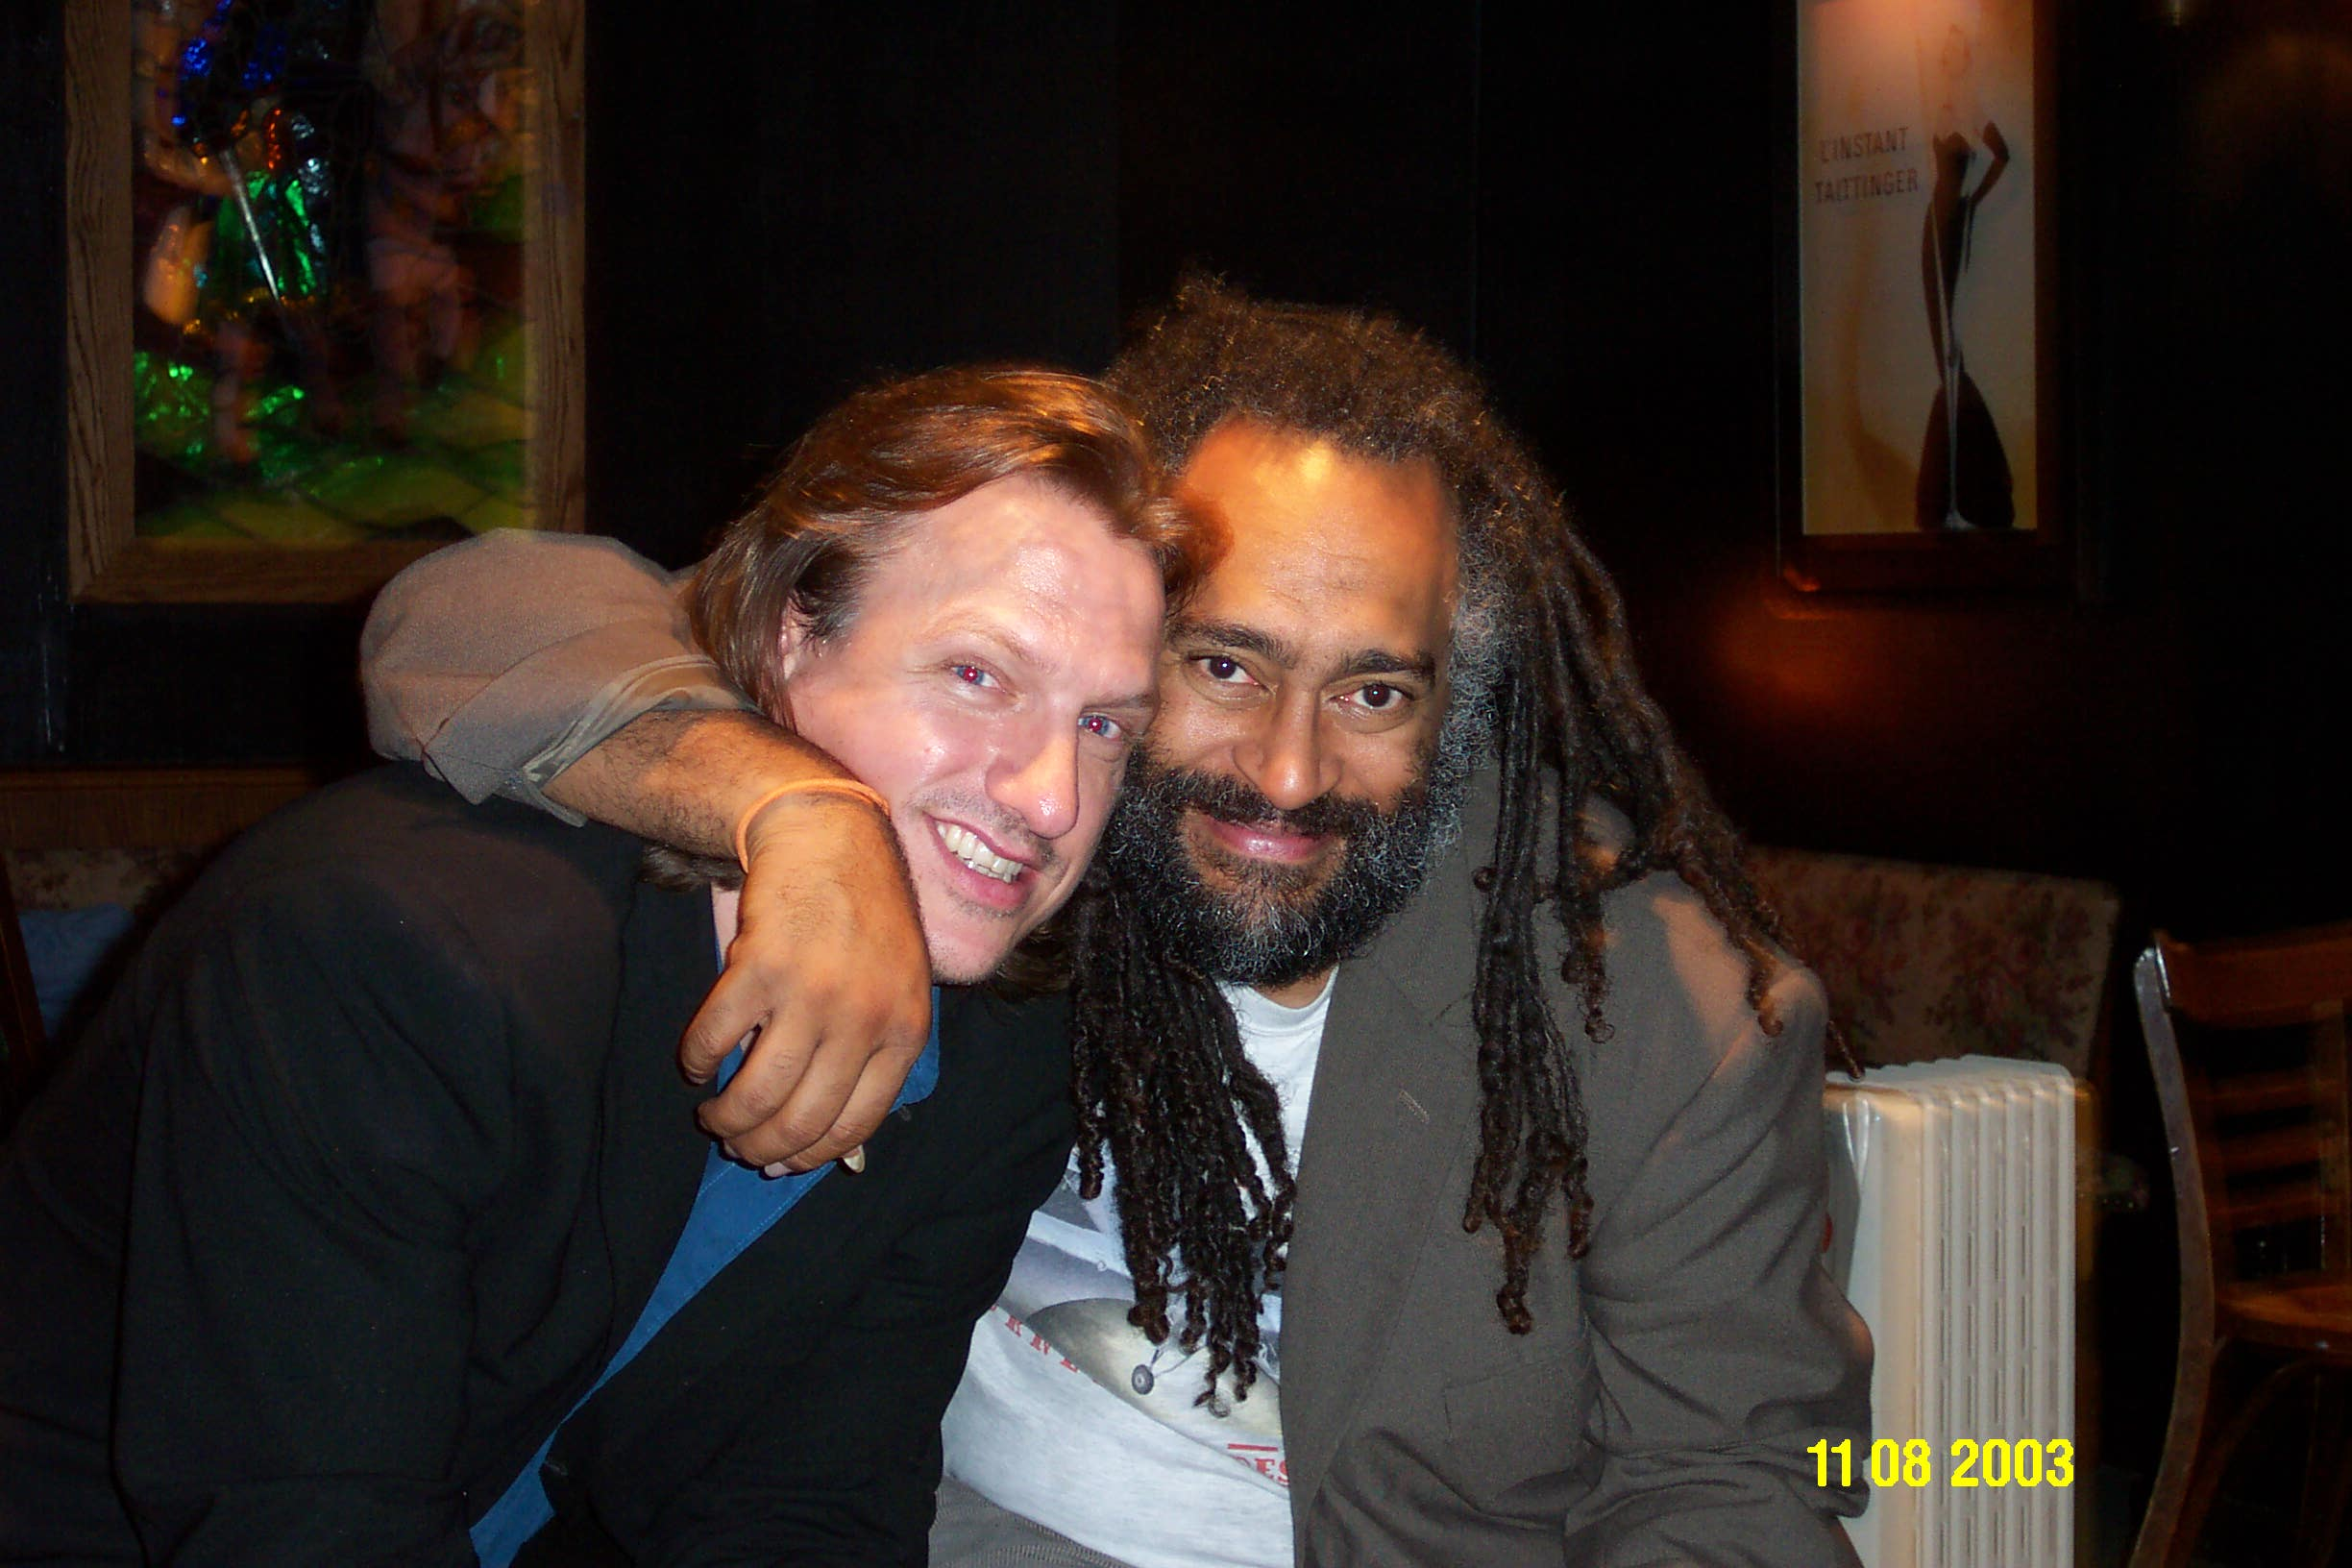 Paul (left) with good friend and fellow musician Vance Gilbert in Houston, Texas. (November 8, 2003) Paul's title track from Translucent Soul speaks of their friendship and deals with the issue of racism.